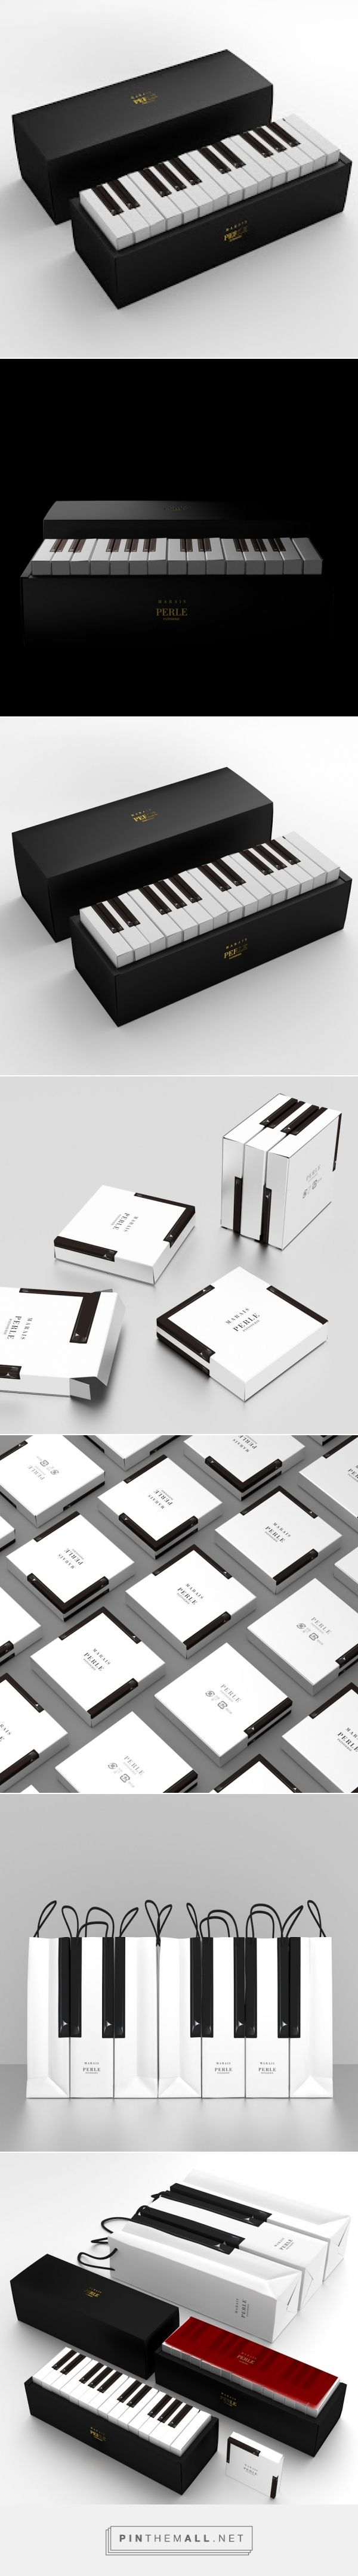 Marais         on          Packaging of the World - Creative Package